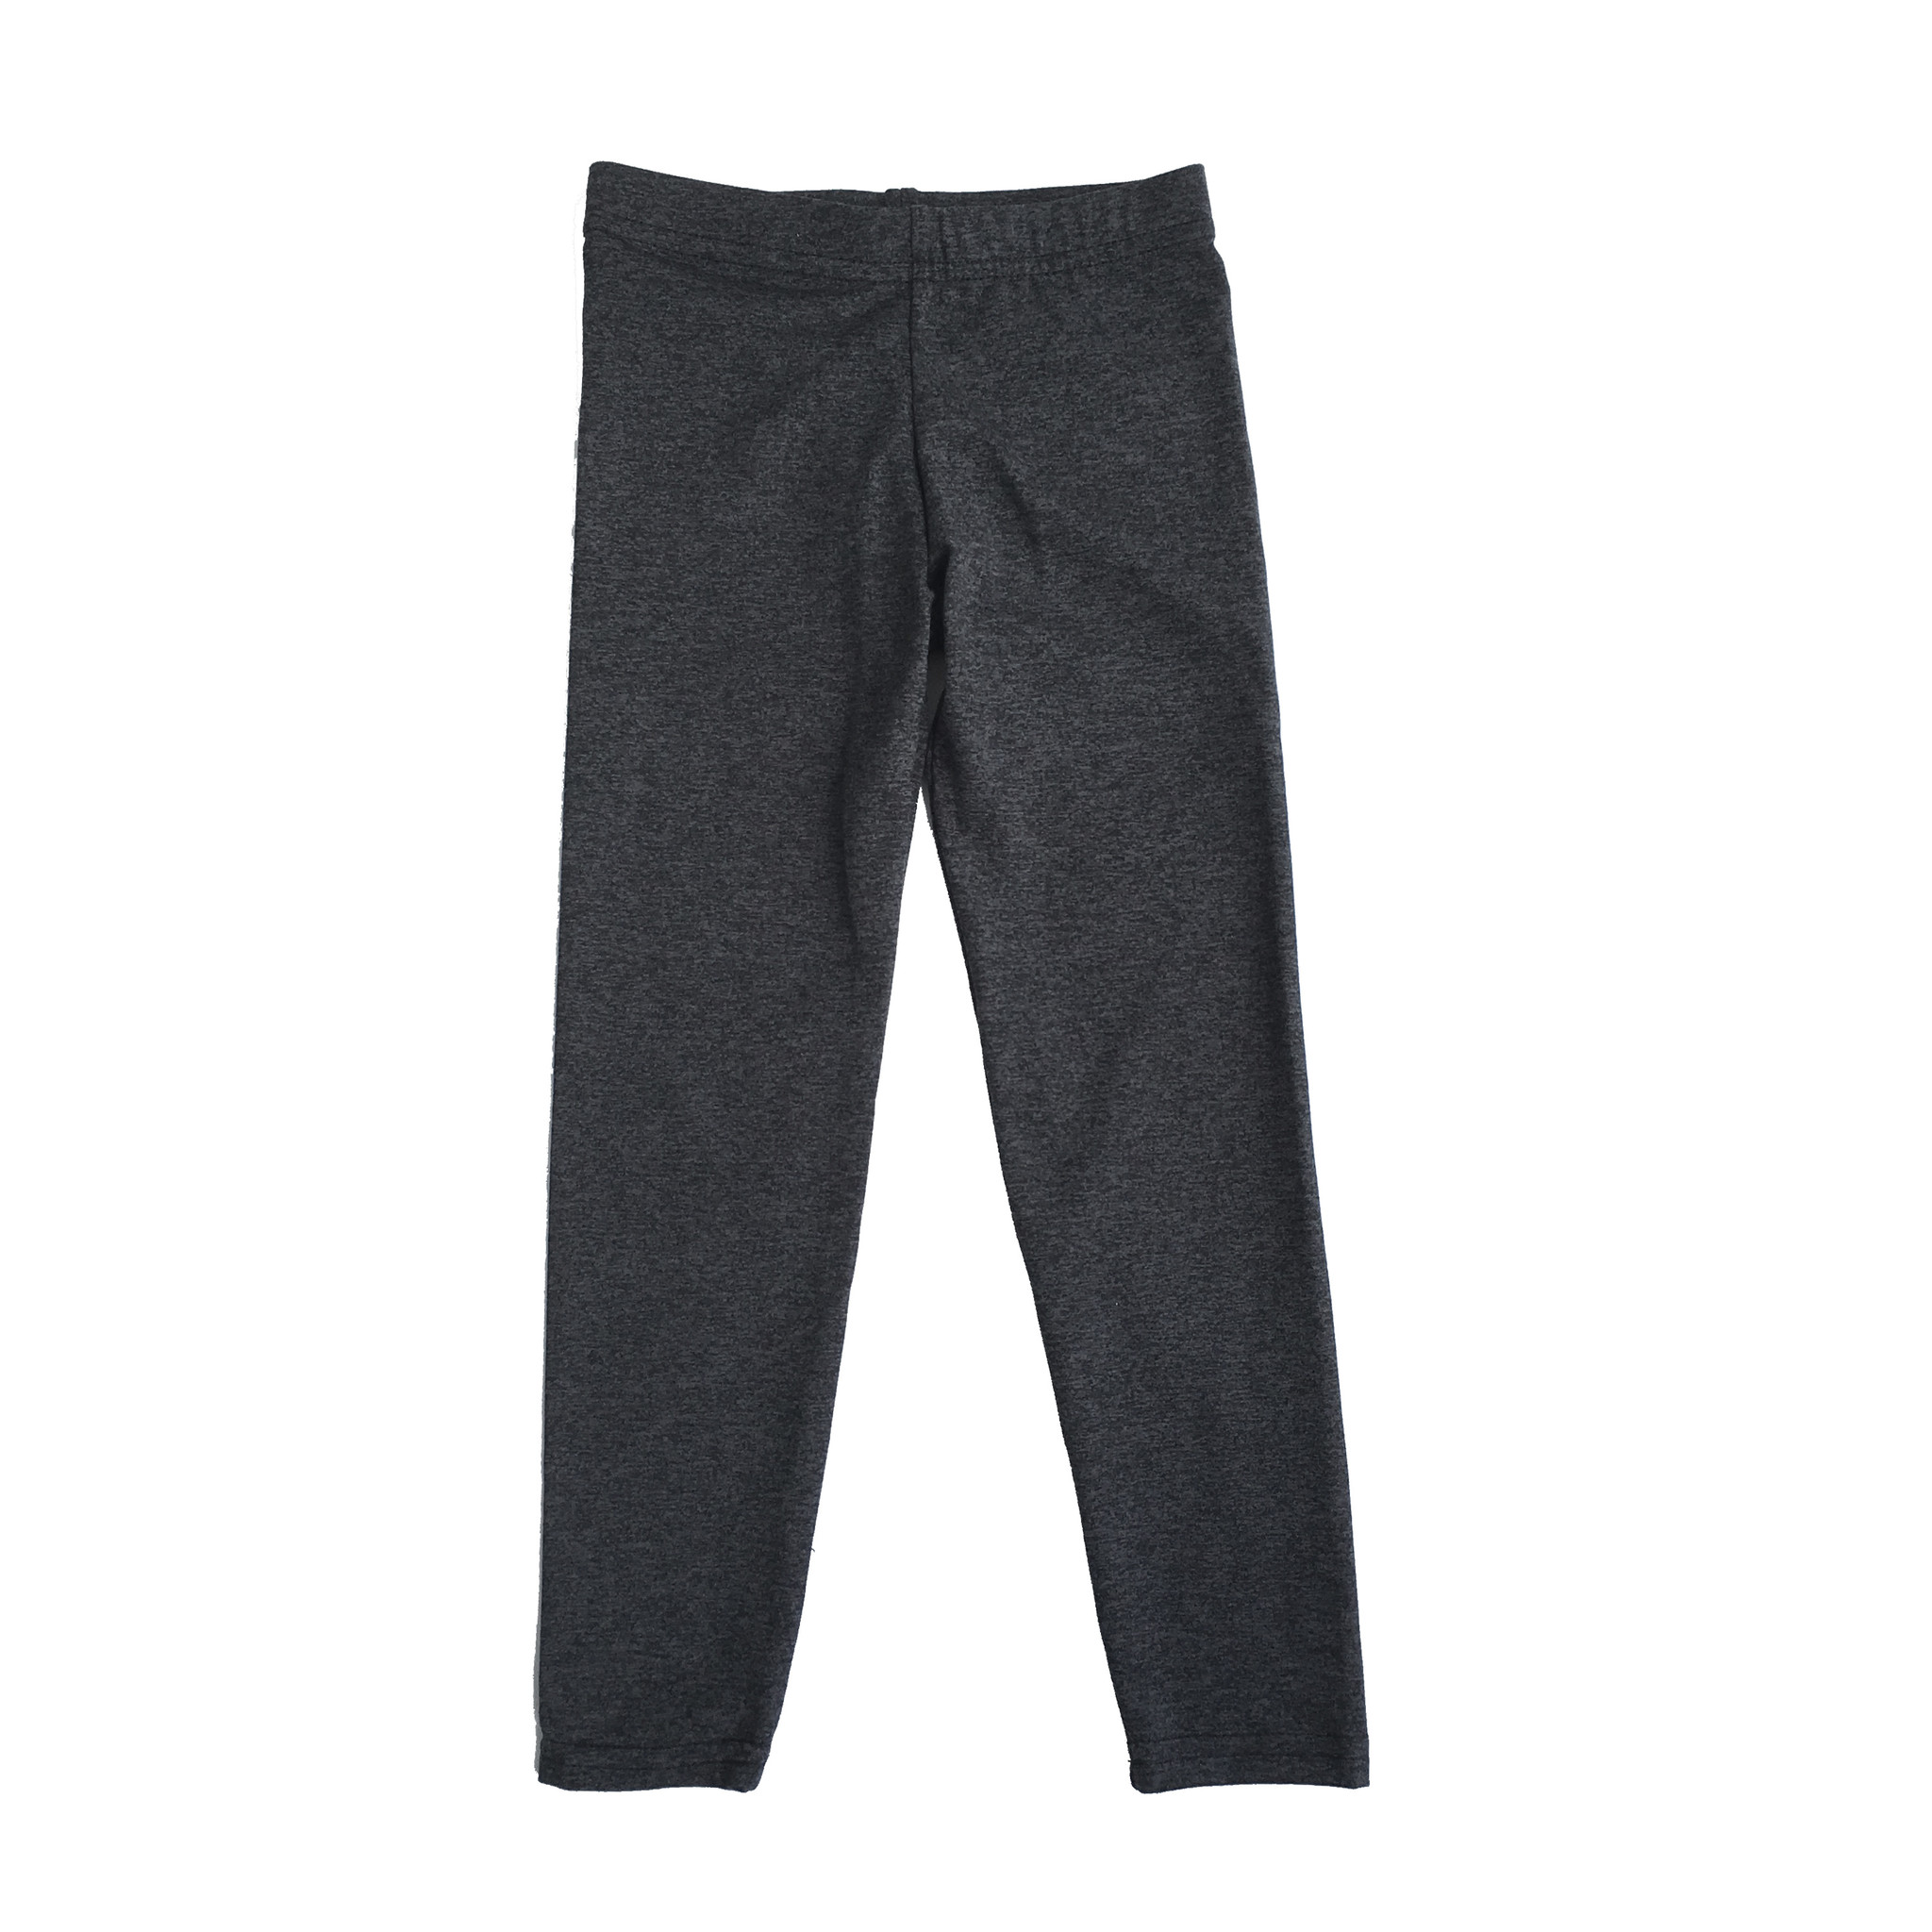 Dori Creations Charcoal/Black Heathered Legging